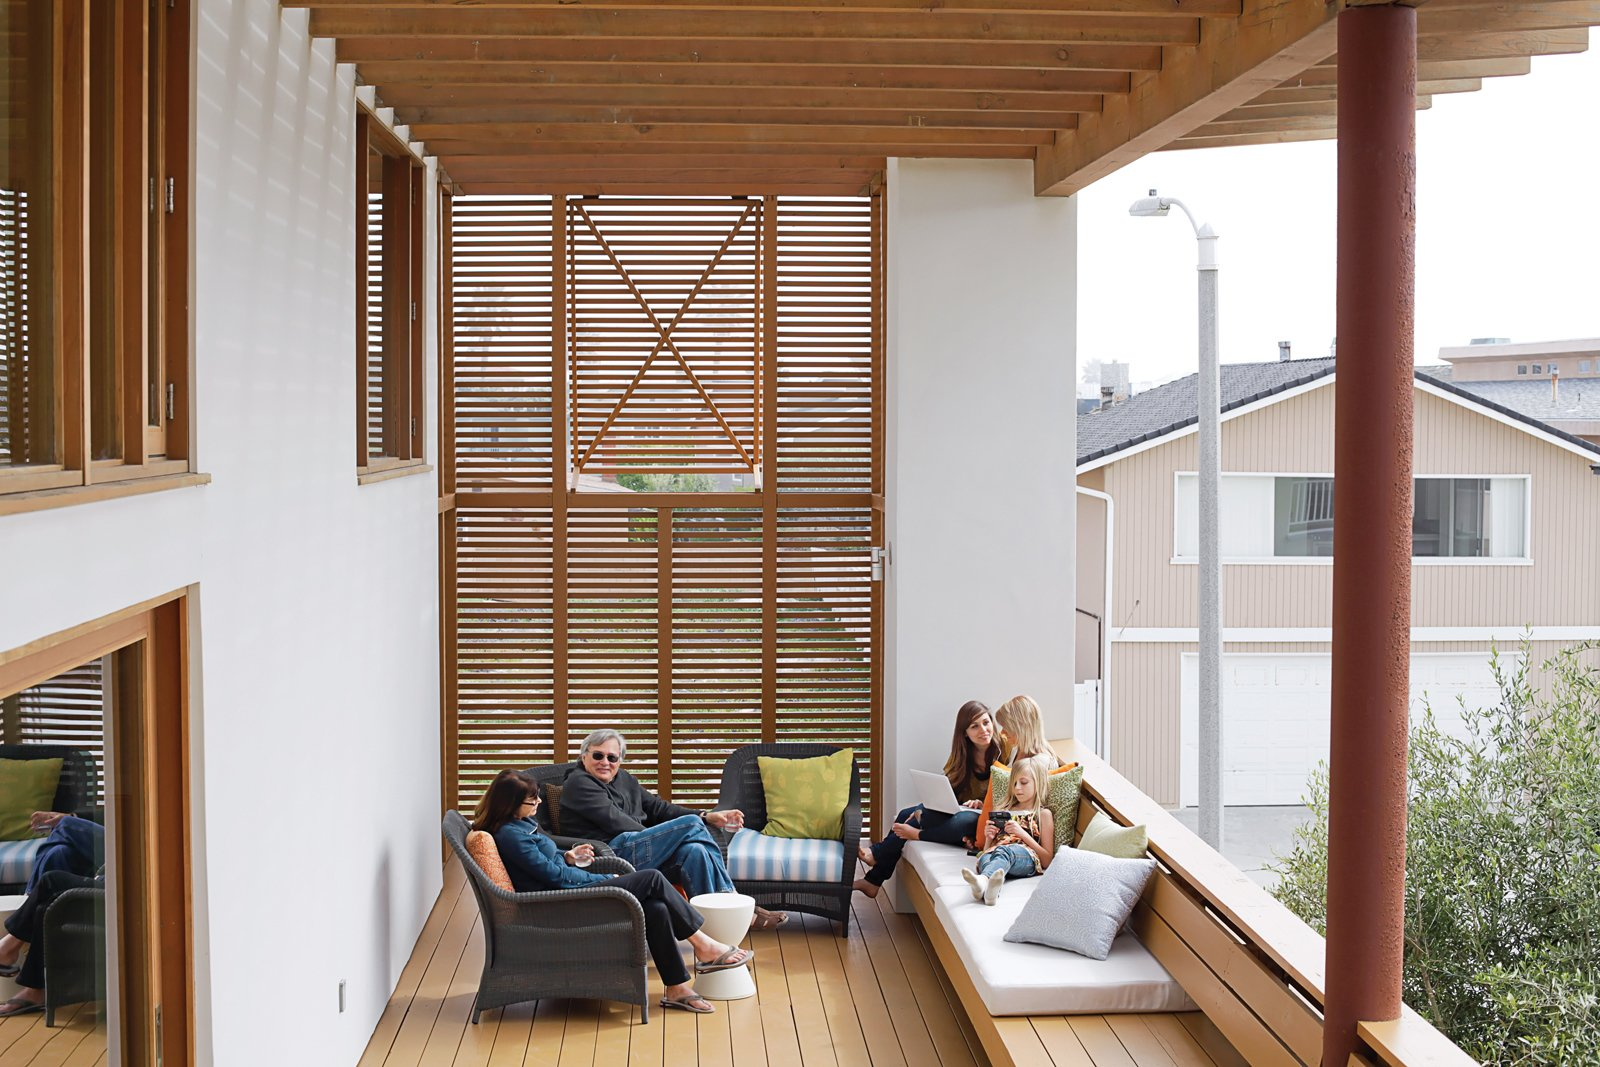 Cedar louvers increase privacy and shade on the second-floor deck, where Carole and Duane relax with granddaughters Natalie and Allison and their friend Katherine. Tagged: Outdoor, Small Patio, Porch, Deck, and Wood Patio, Porch, Deck.  Photo 5 of 13 in Coast Docs